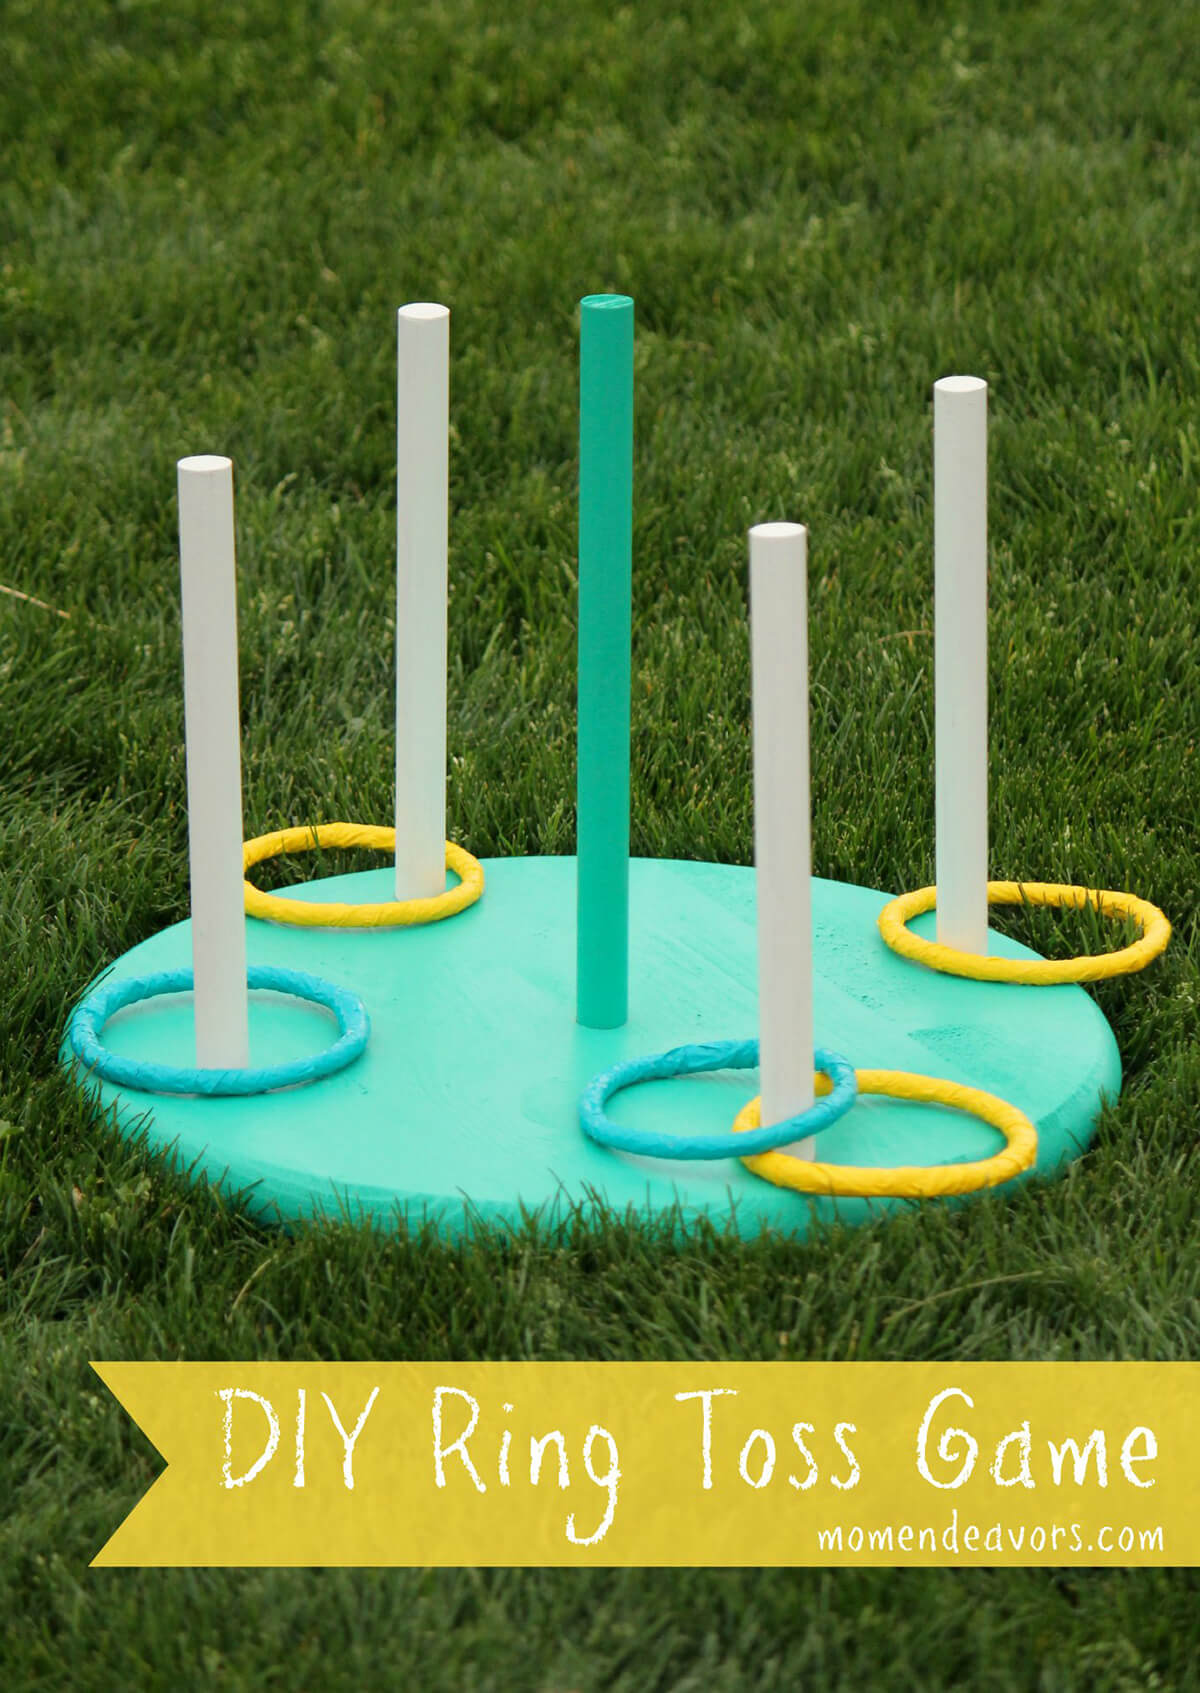 18 A Green And Yellow Ring Toss Game